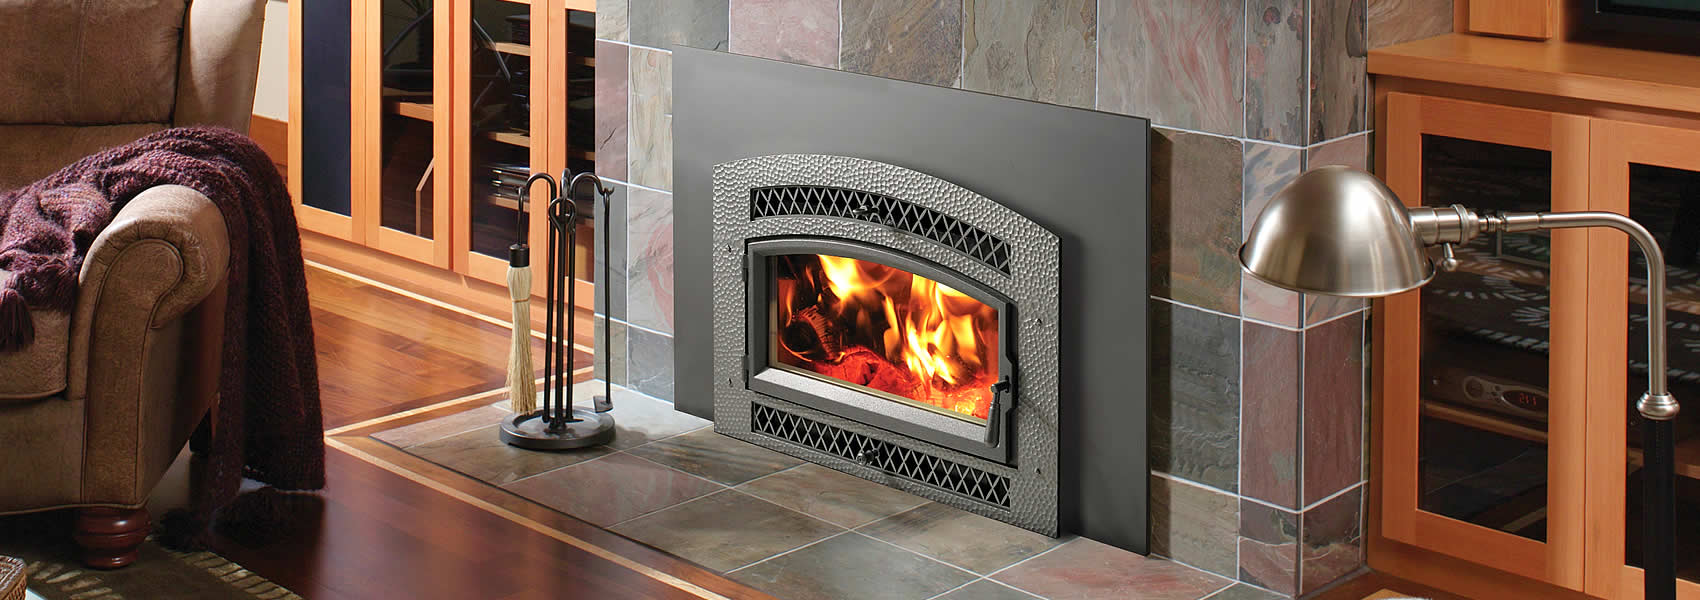 fpx wood fireplace